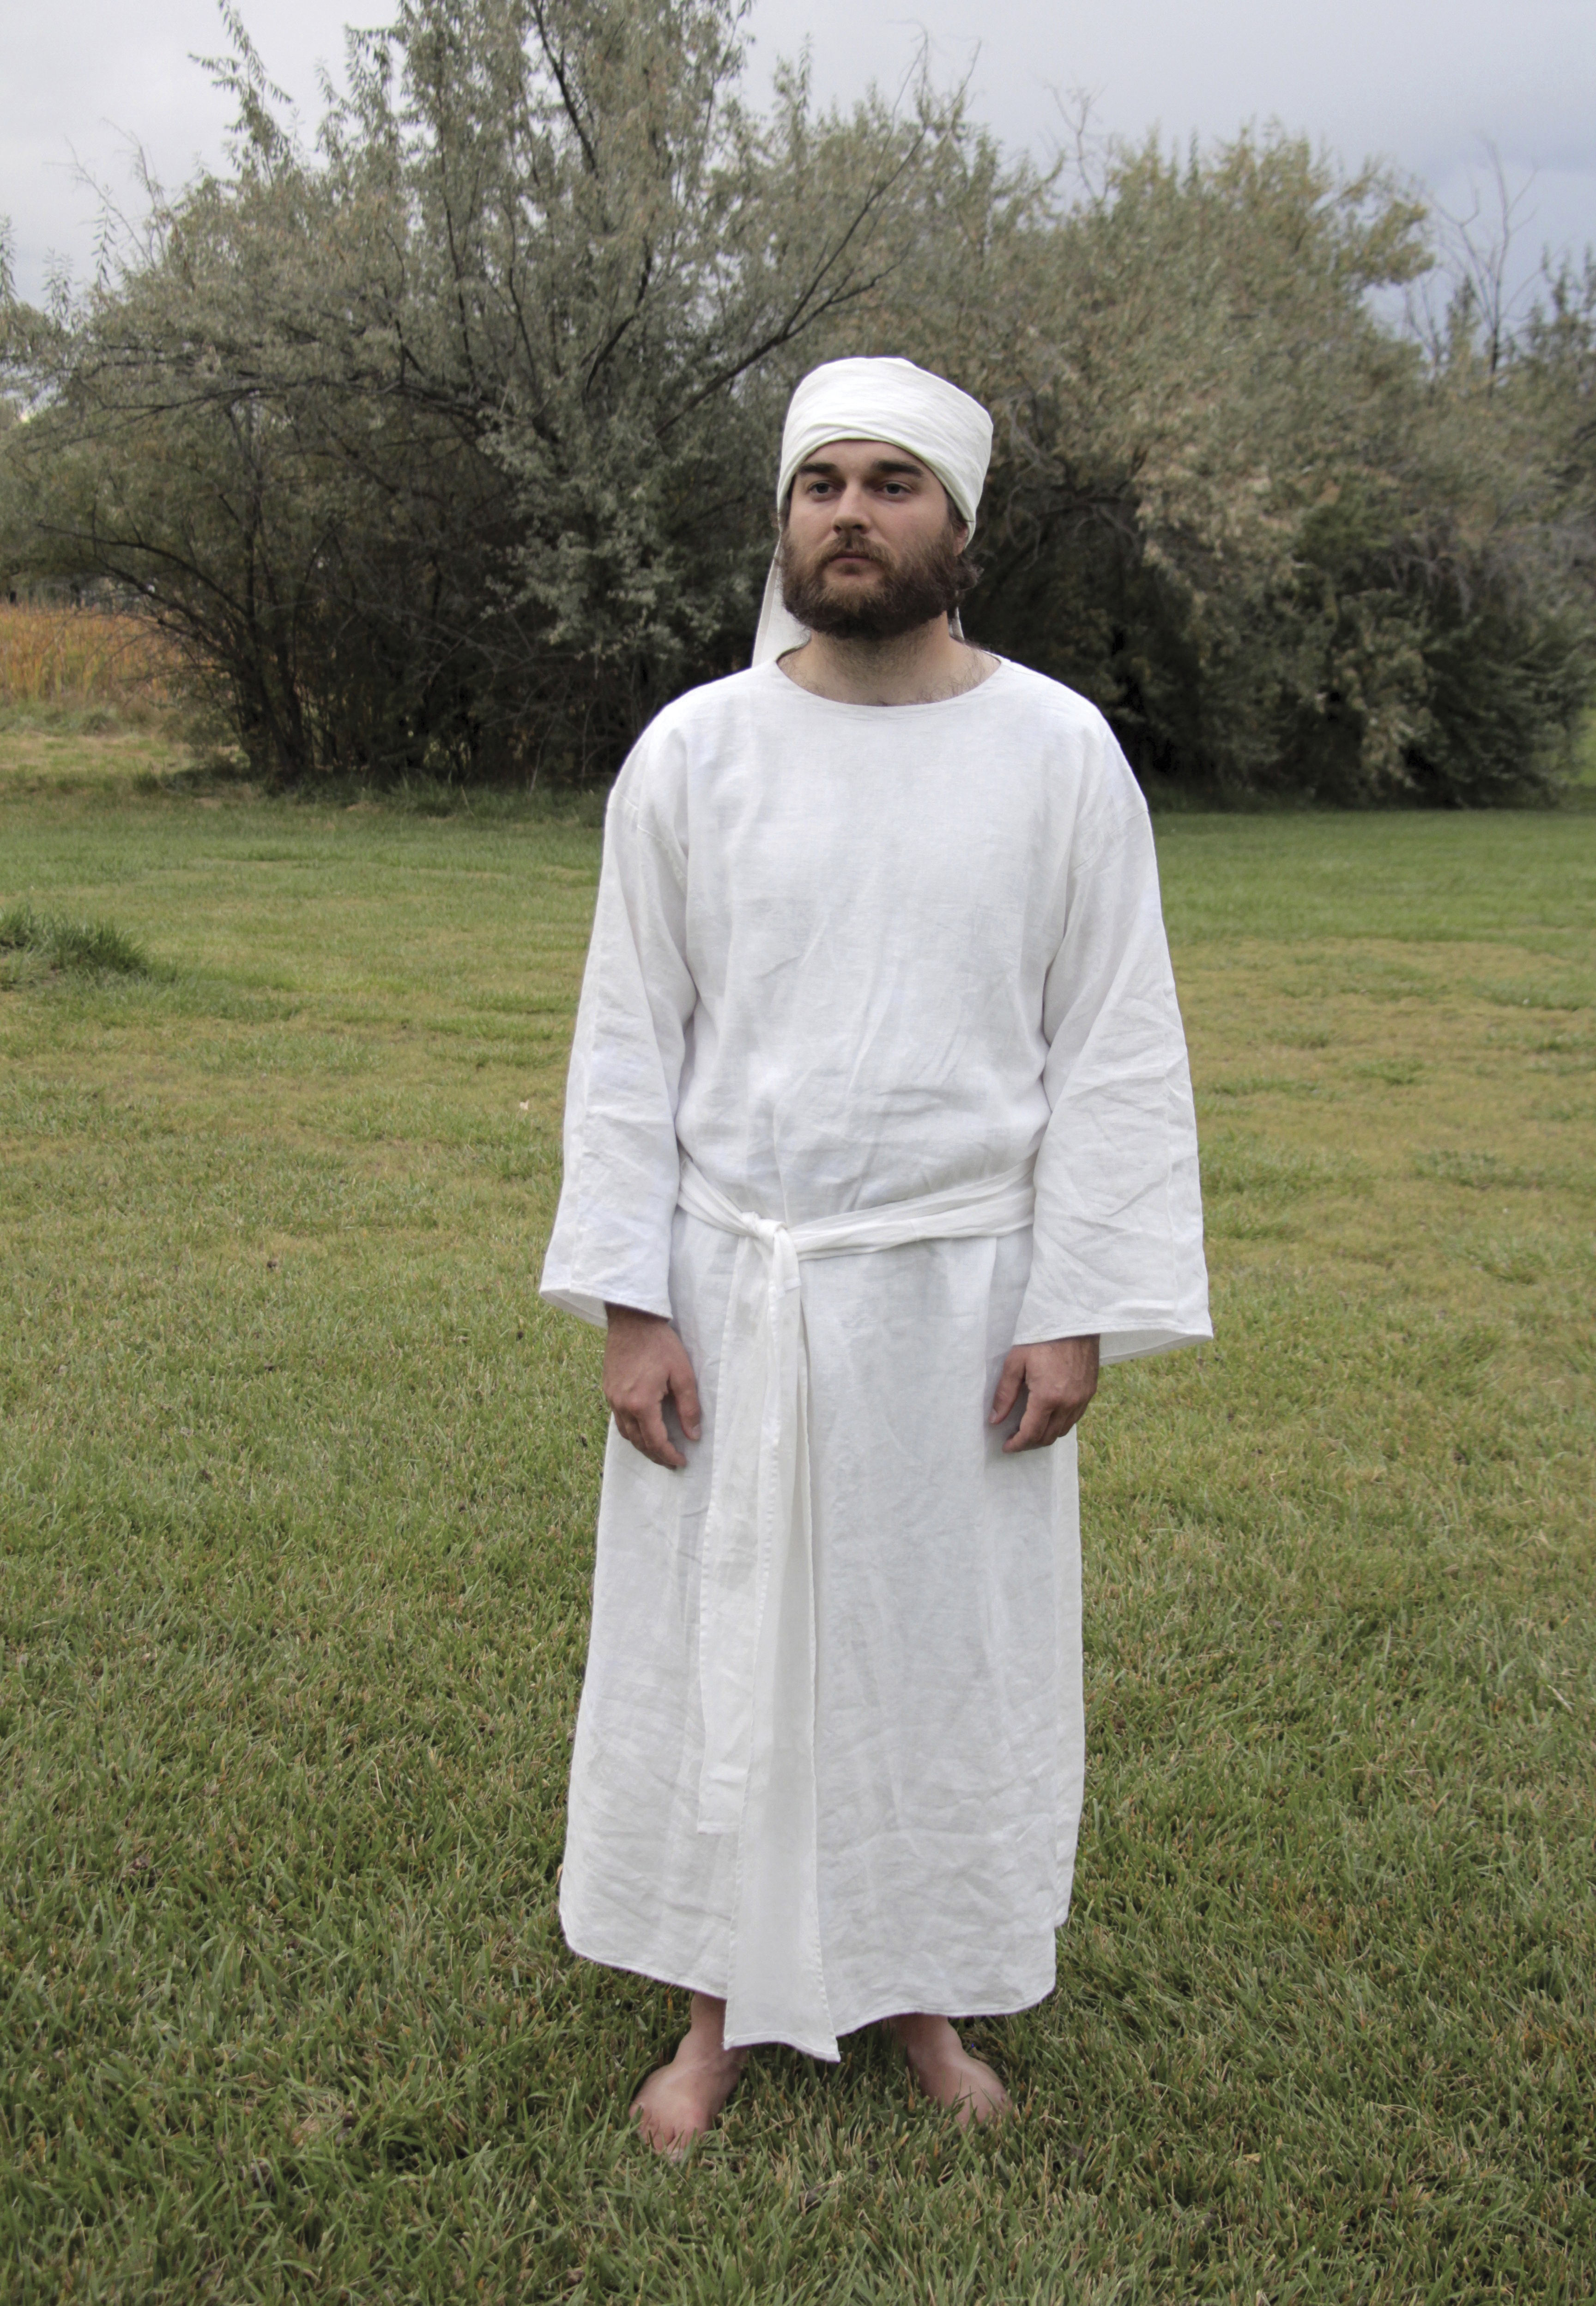 A model wearing the clothing of an Old Testament priest, created by Israel Daniel Smith.